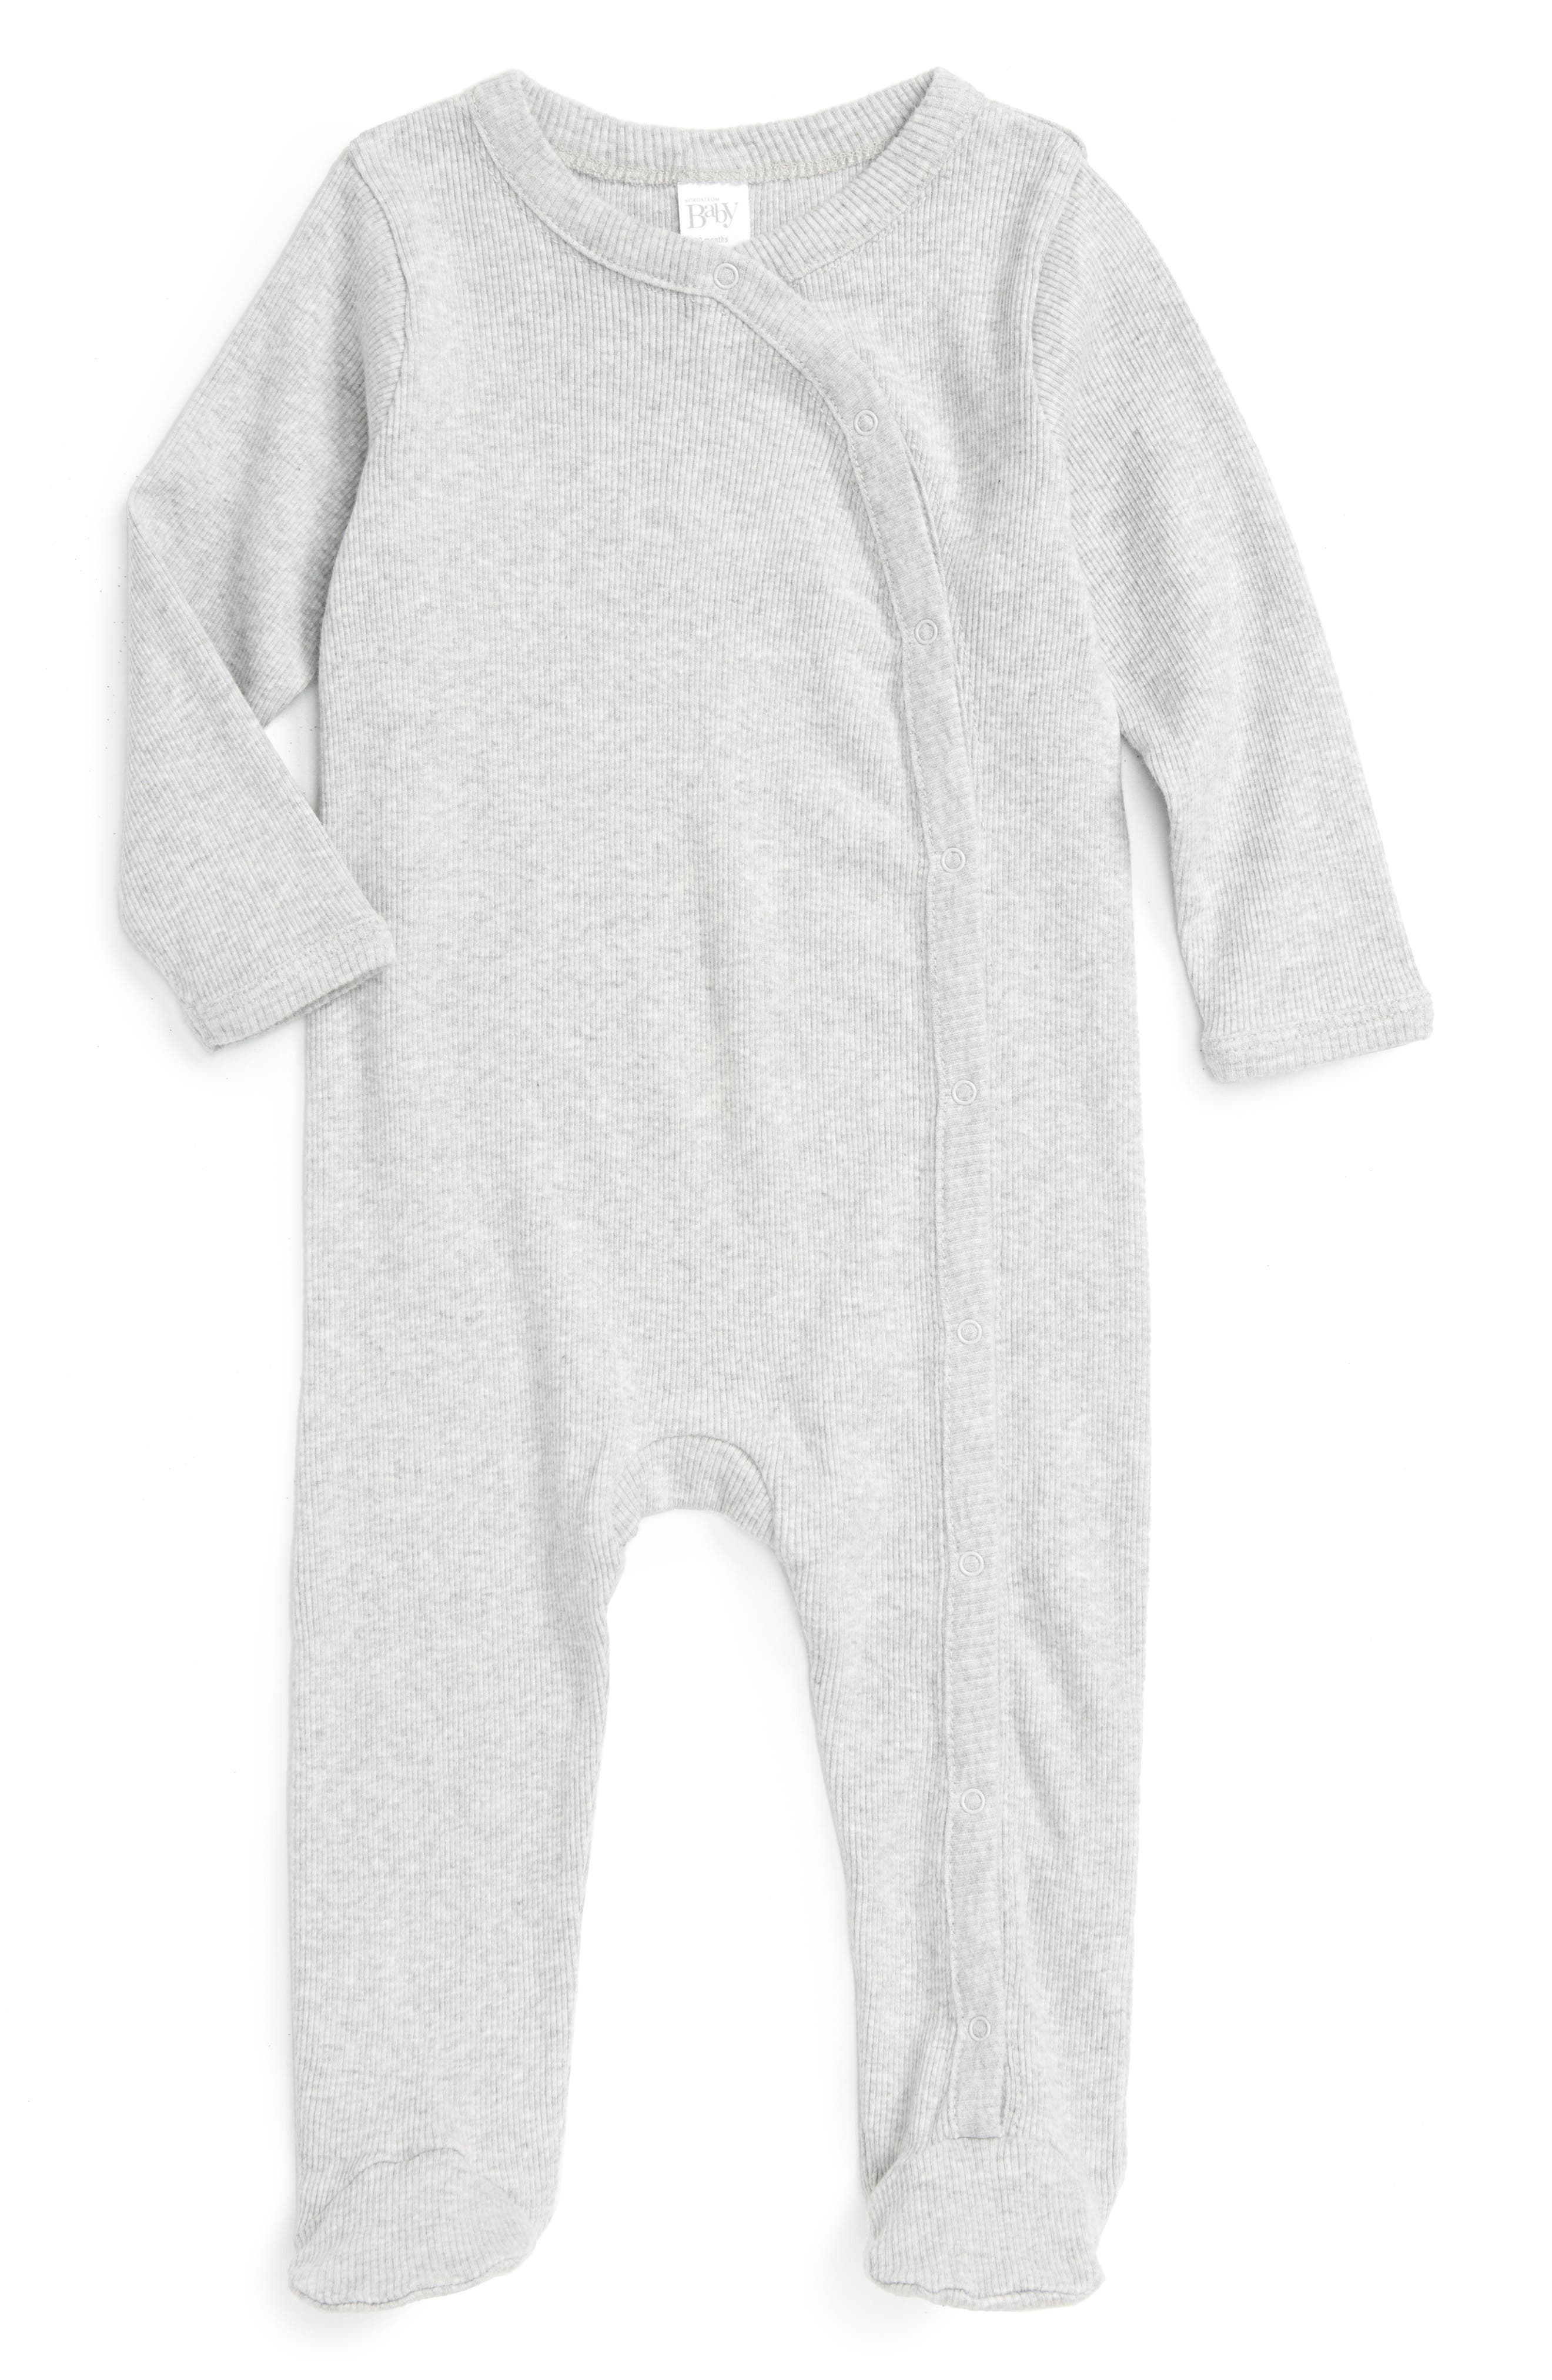 NORDSTROM BABY, Rib Knit Footie, Main thumbnail 1, color, GREY ASH HEATHER